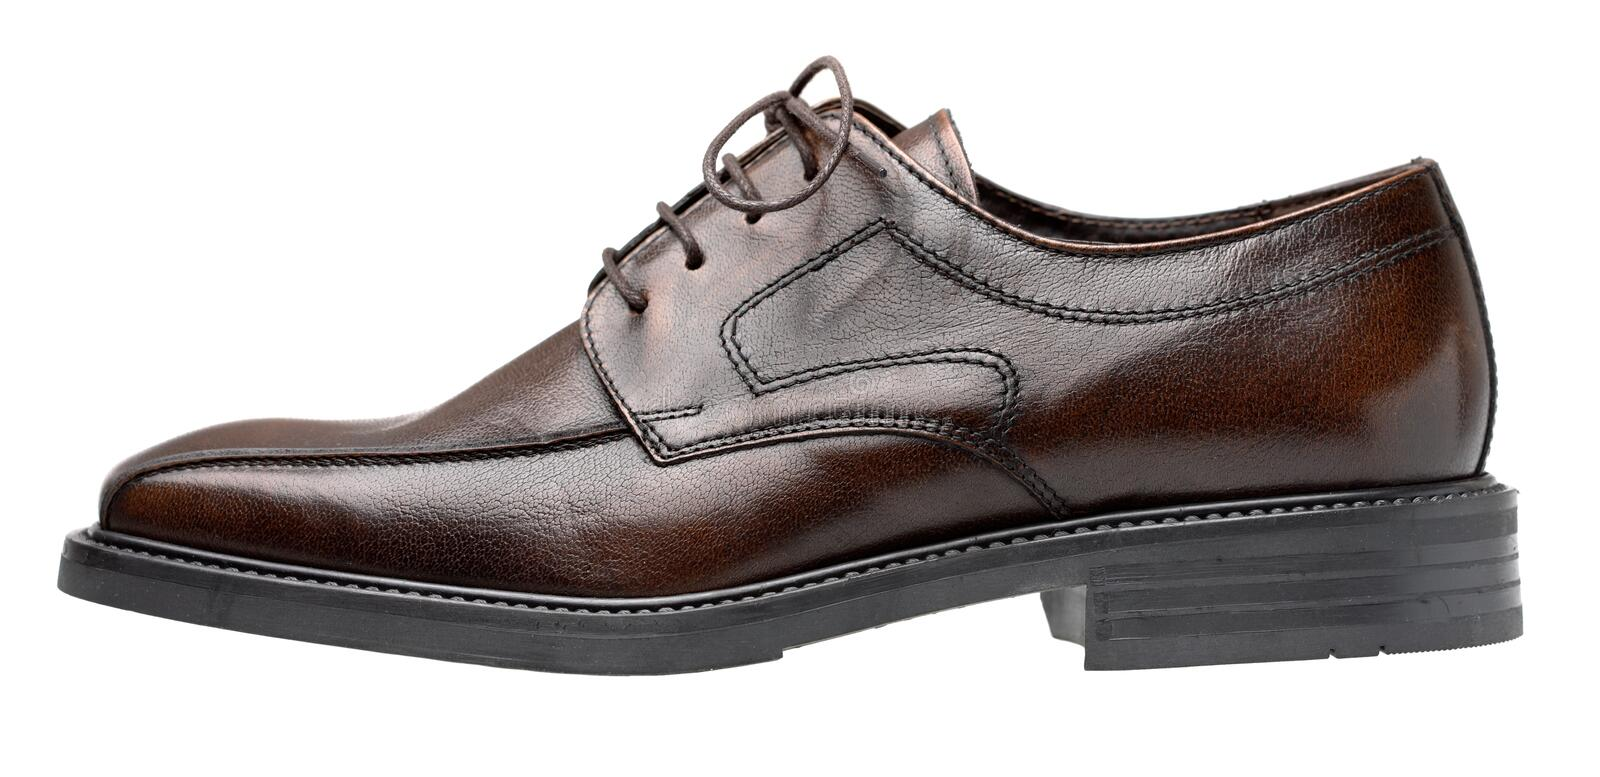 Chaussure de Brown images stock